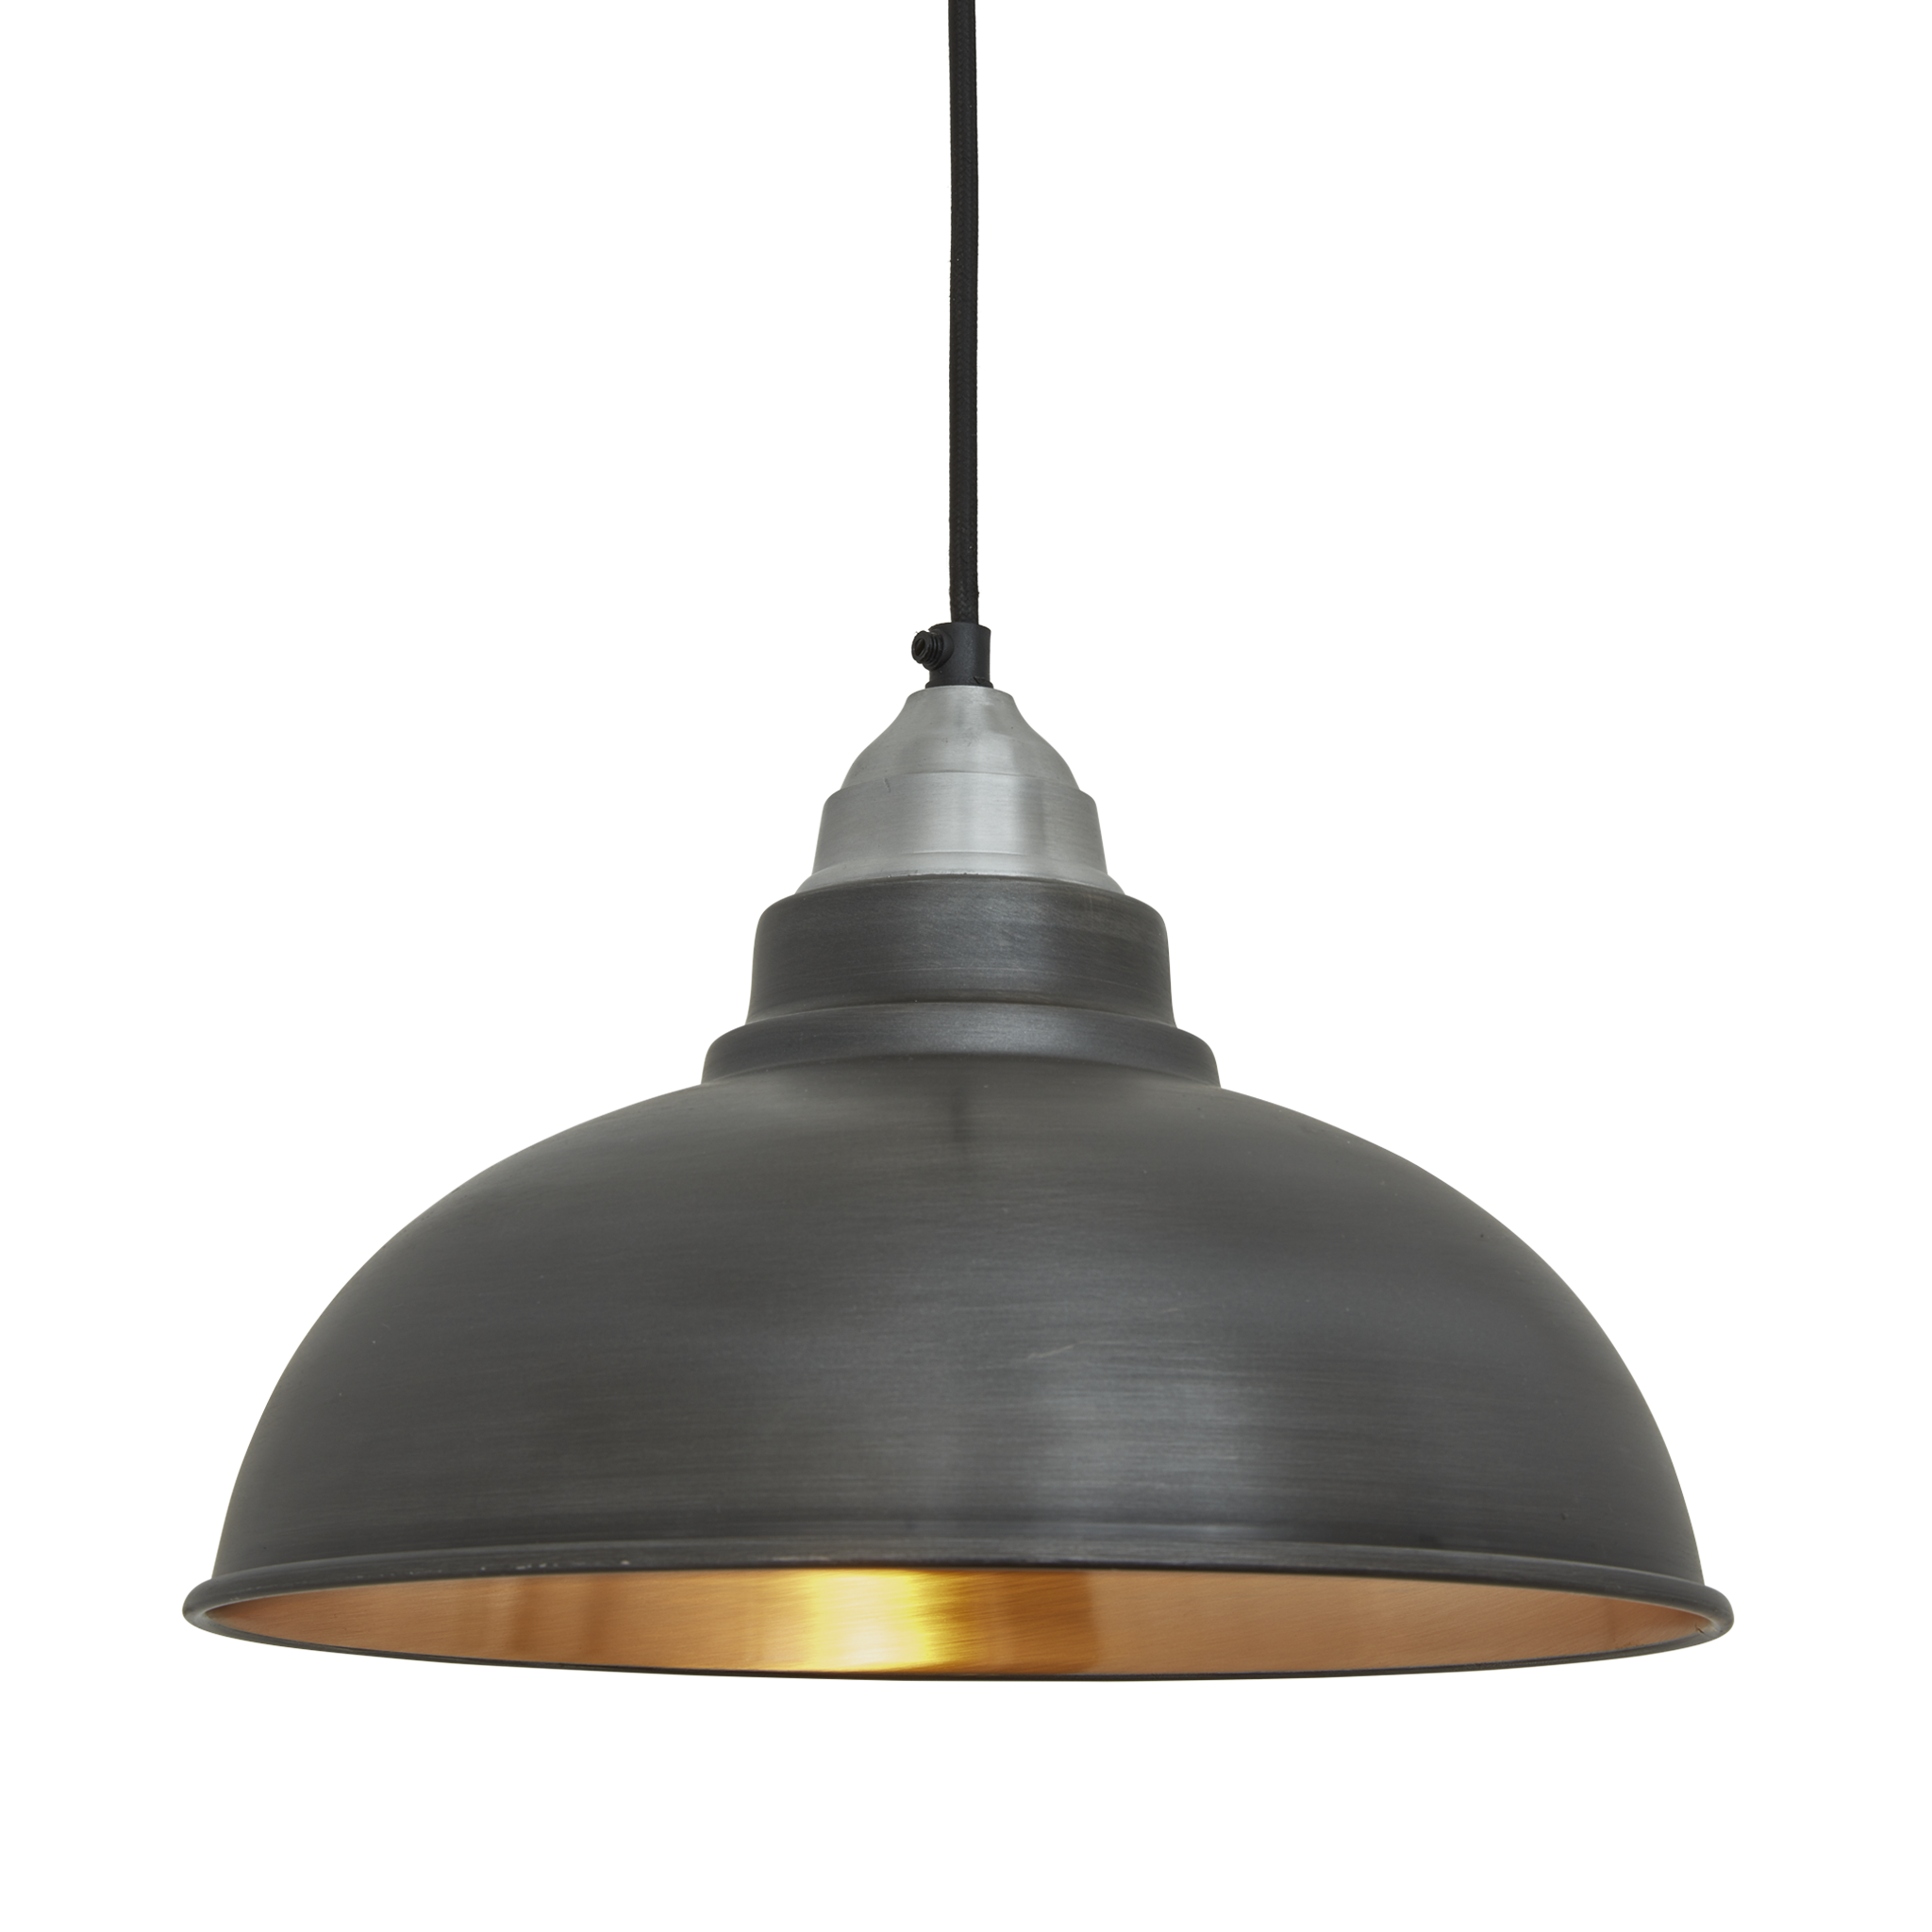 Retro Kitchen Light Fixtures Old Factory Vintage Pendant Light Dark Pewter And Copper 12